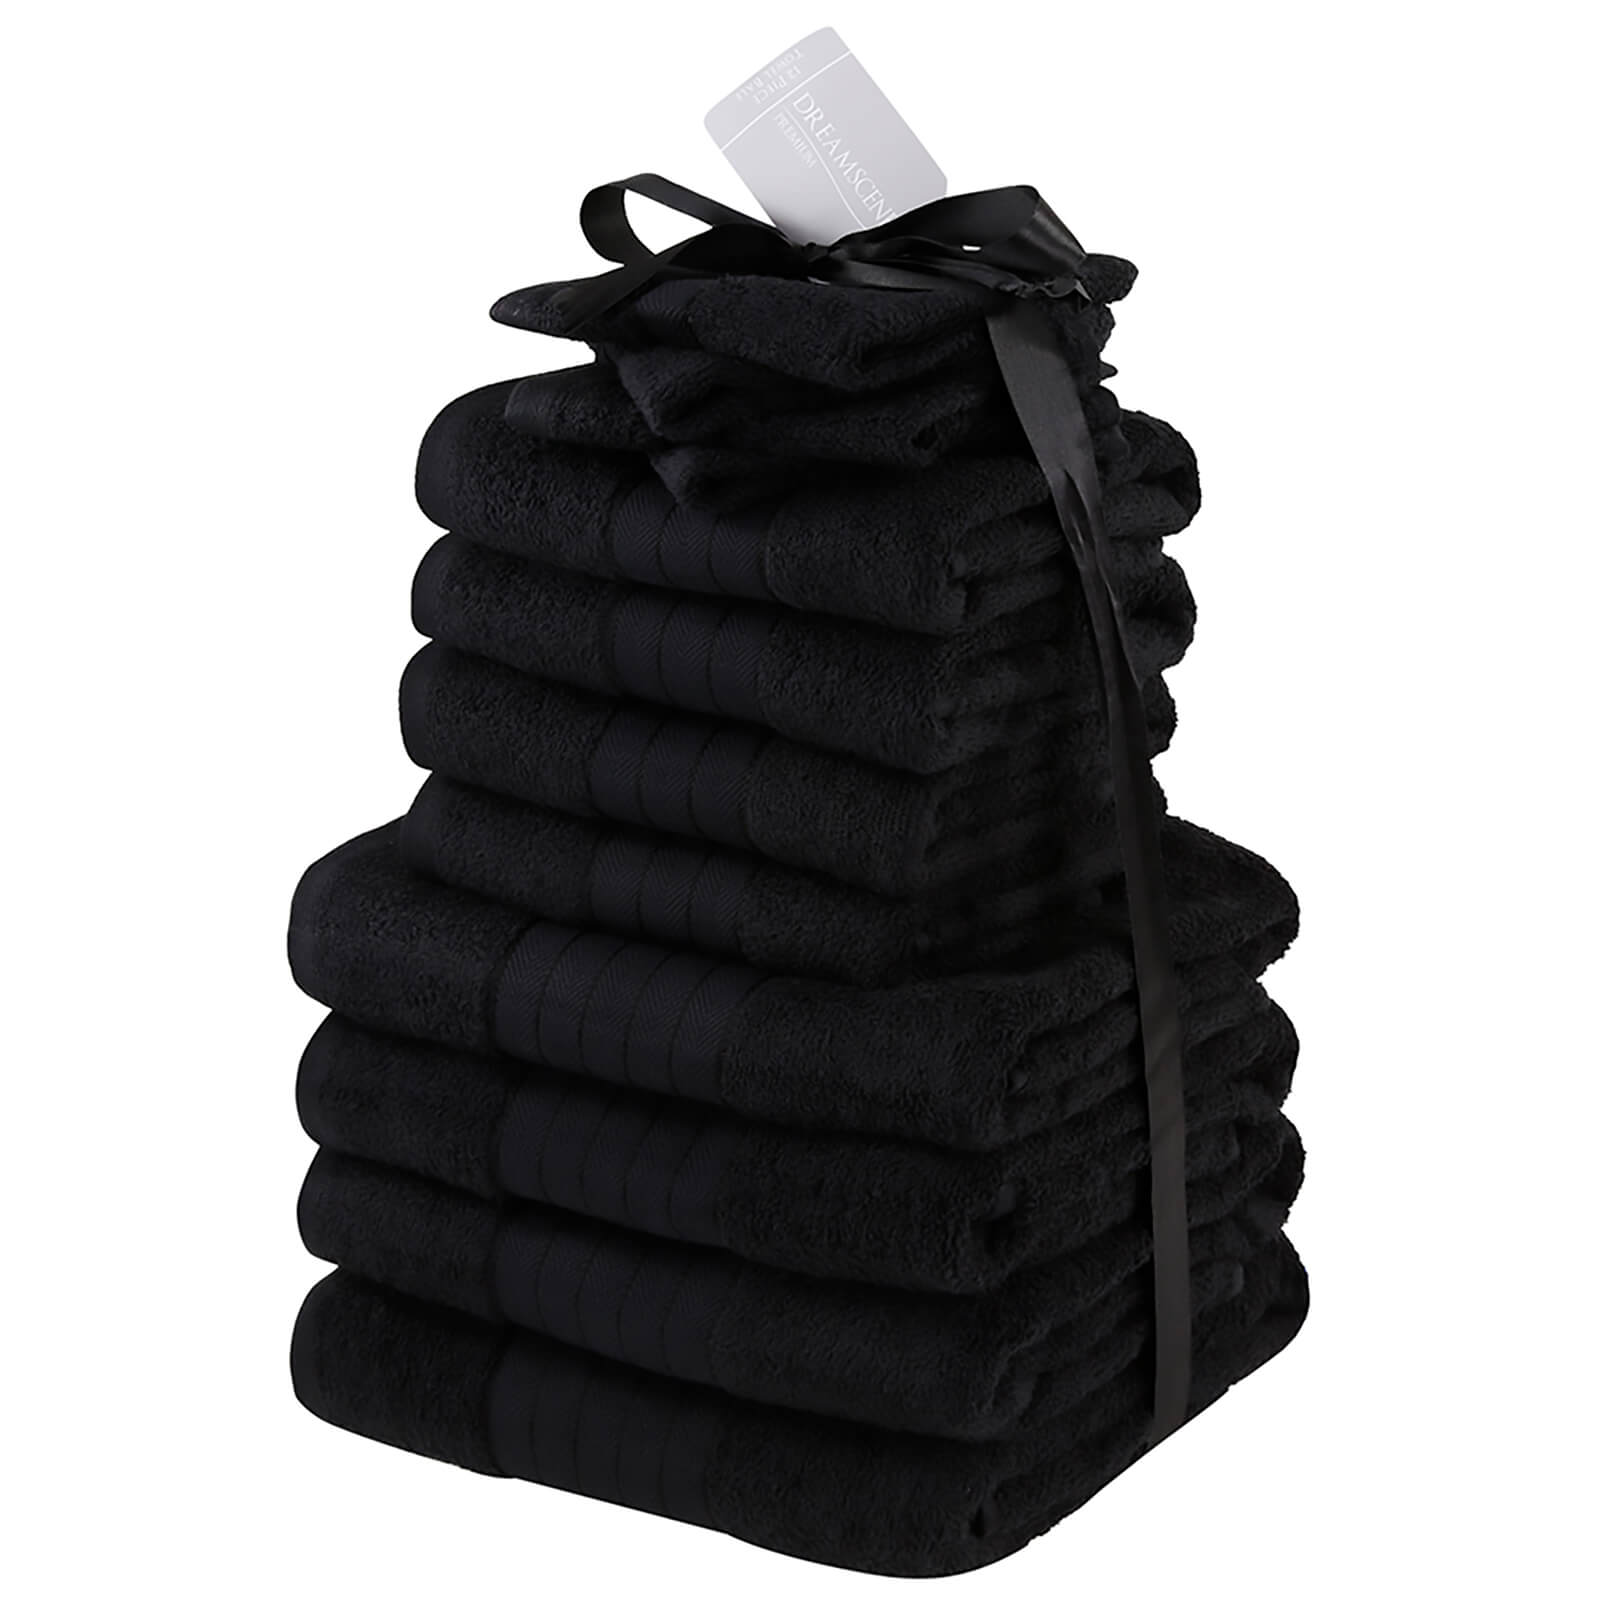 Highams 100% Cotton 12 Piece Towel Bale (500GSM) - Black